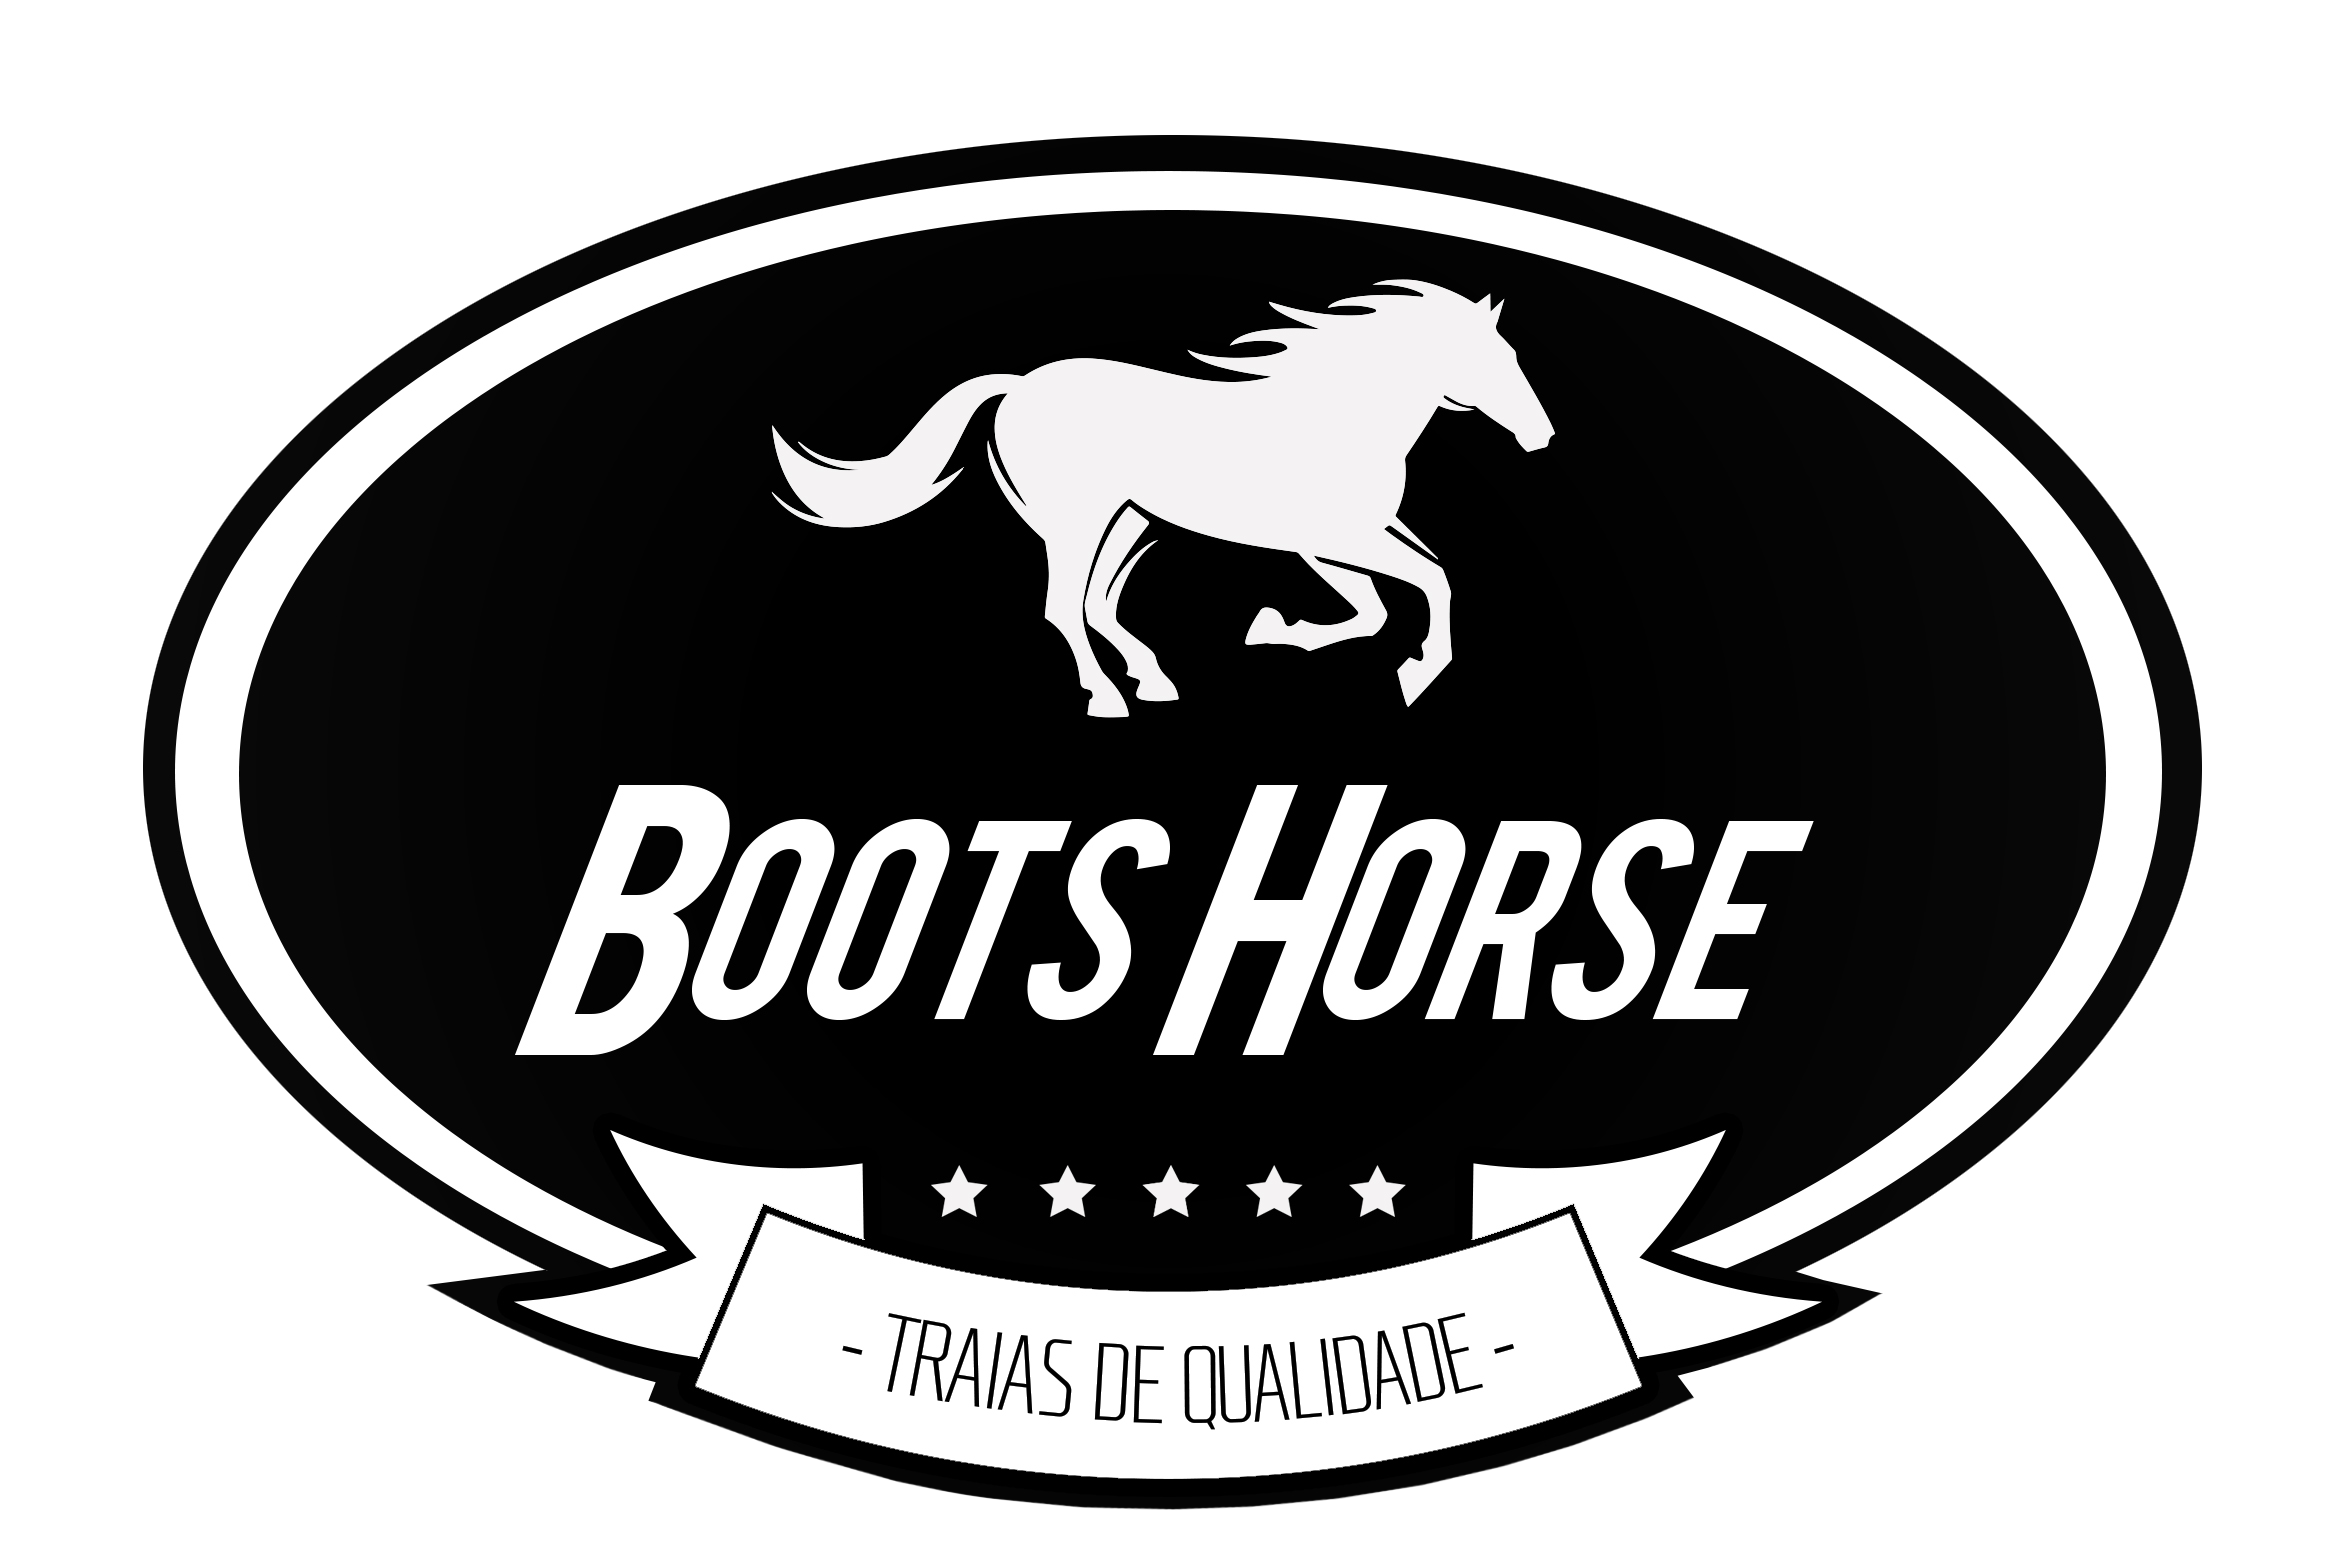 Boots Horse